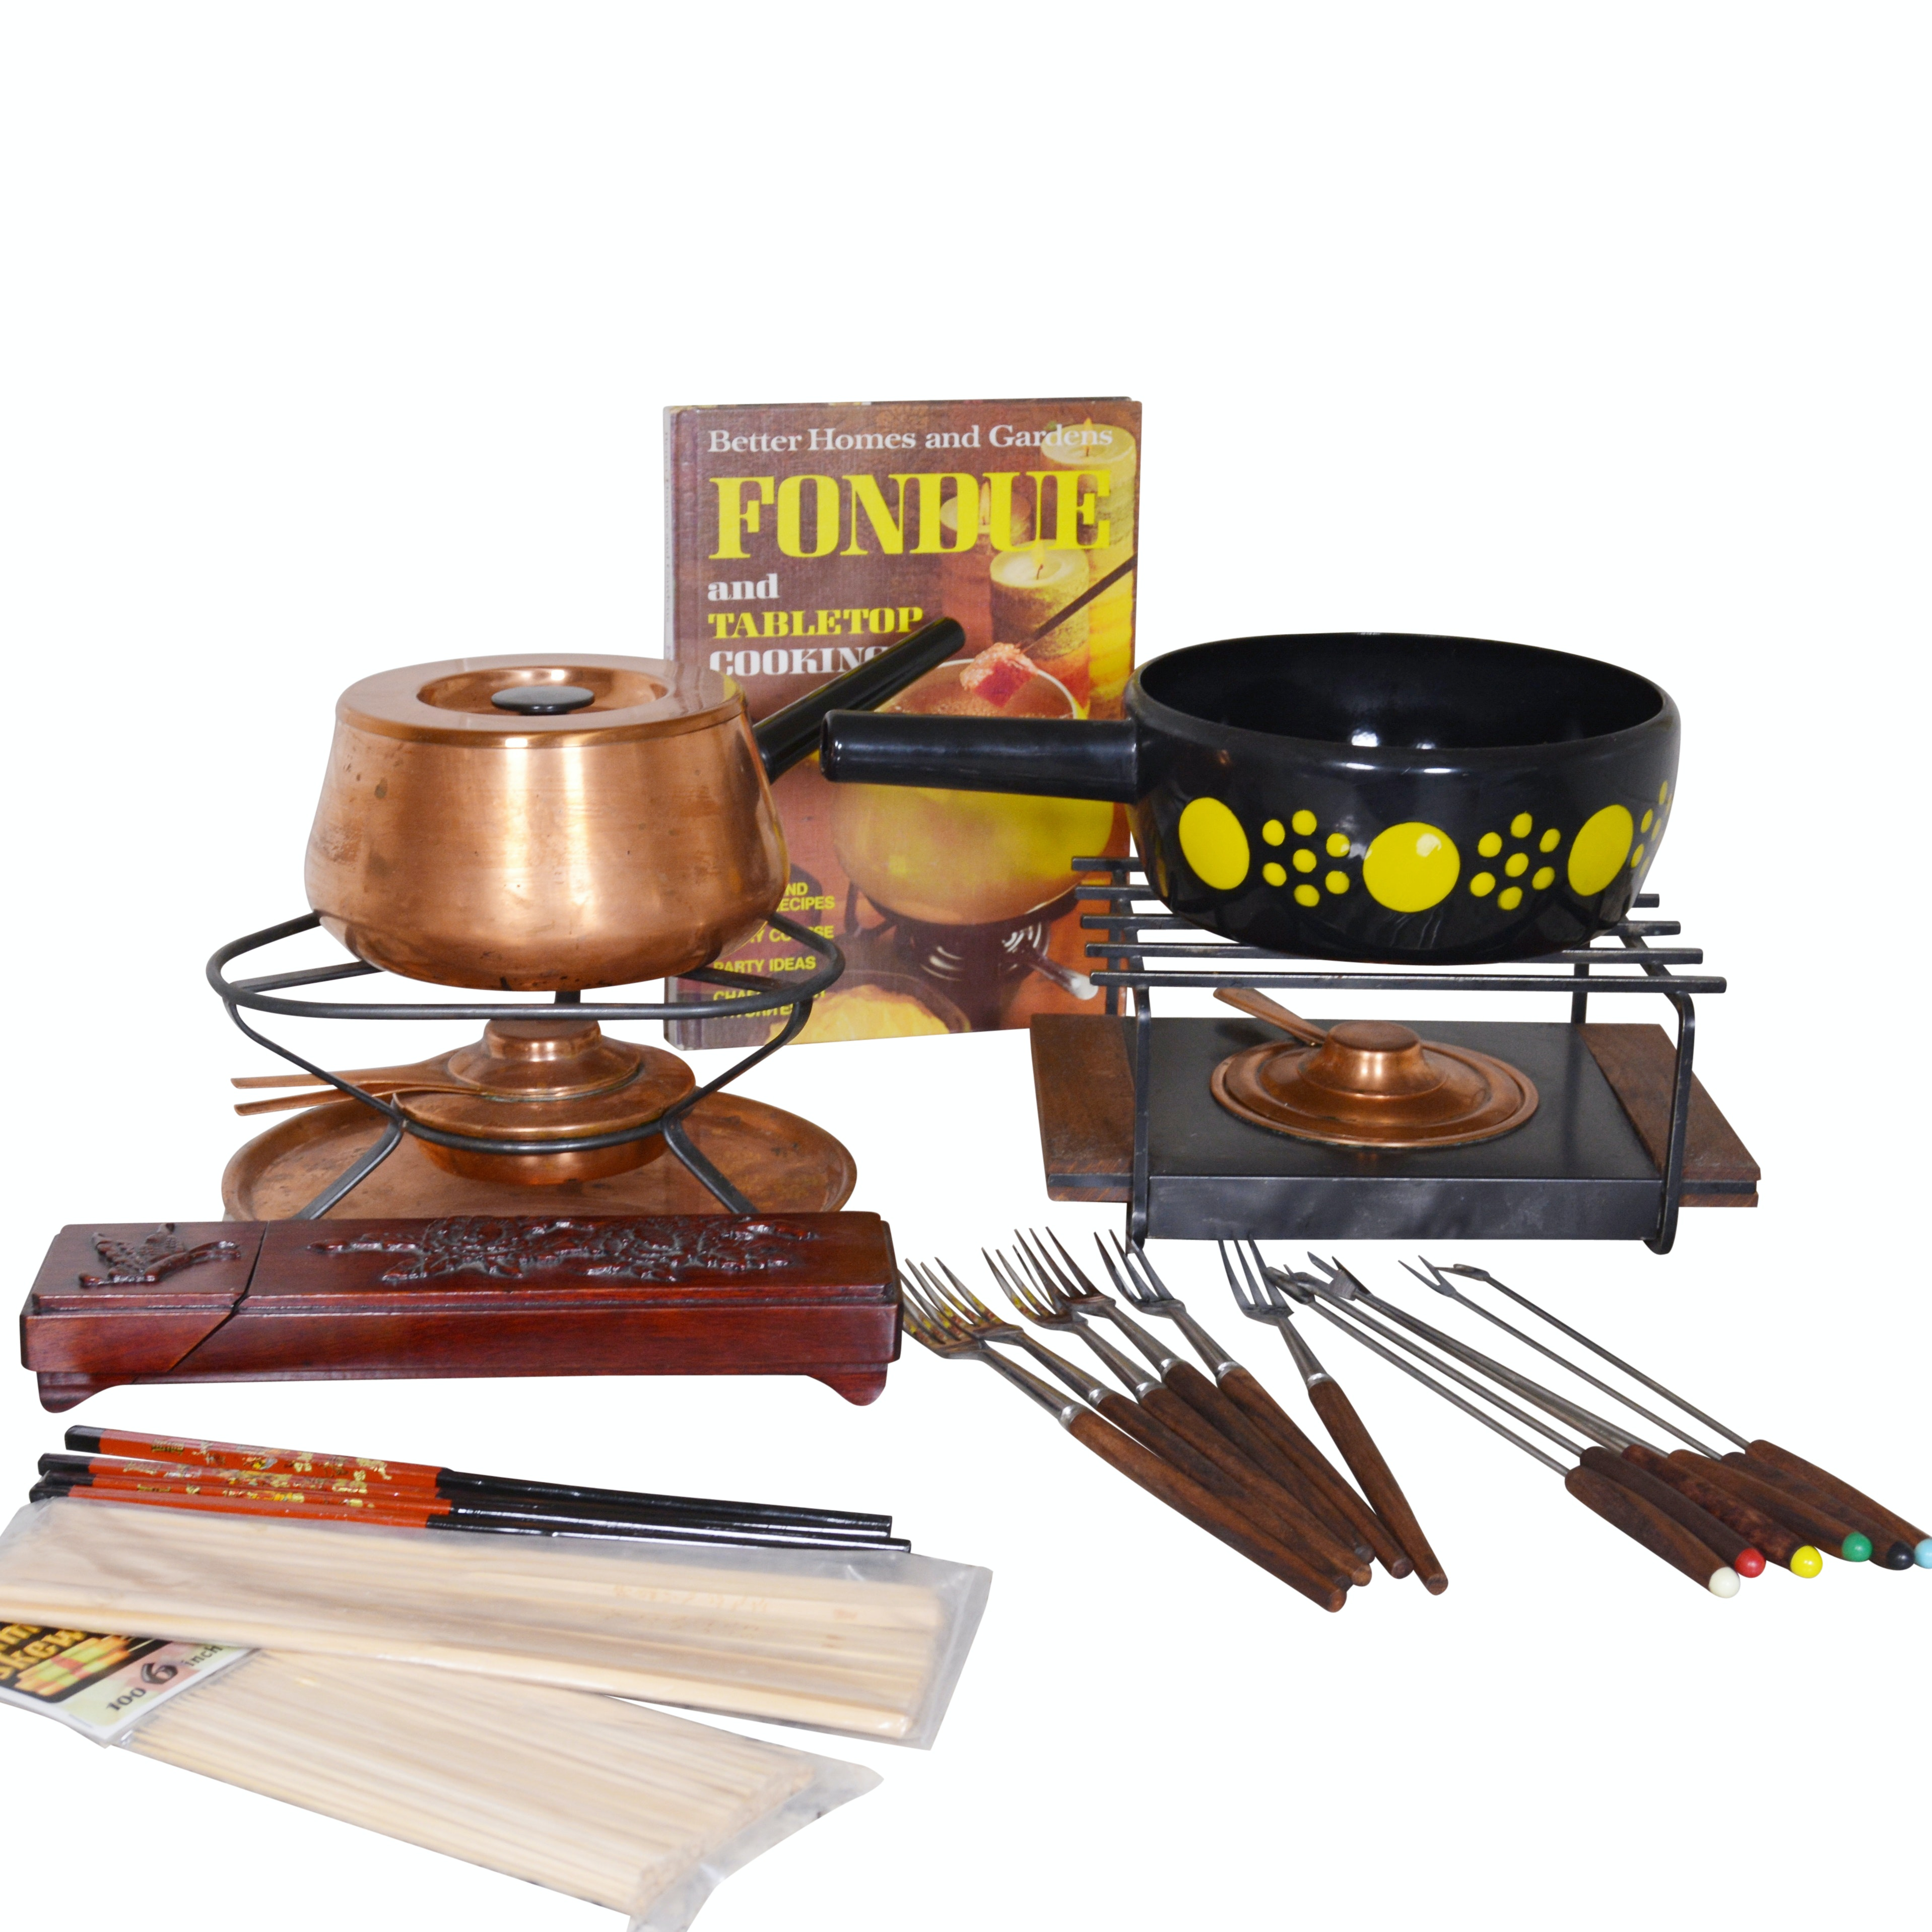 Fondue Pots and Accessories Including Copper Pot and Warming Stand